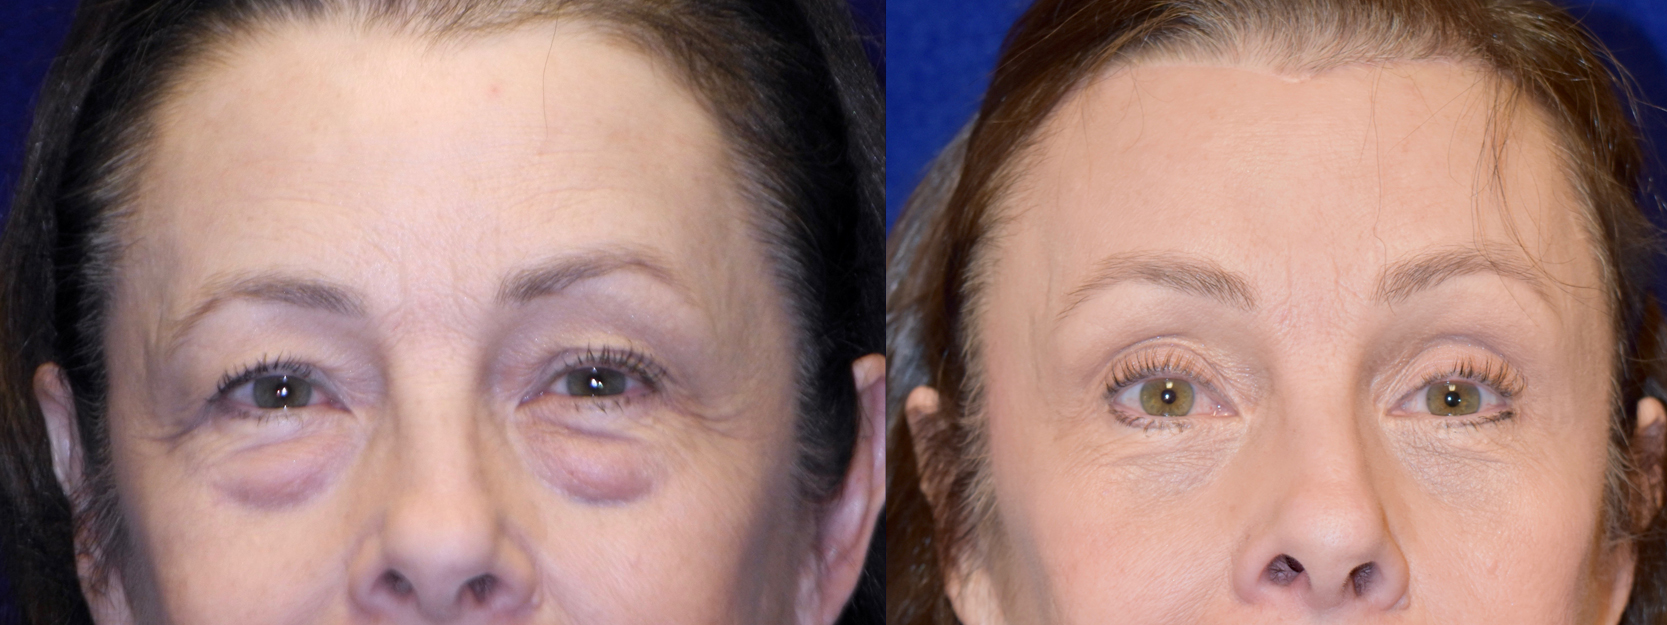 Frontal View - Browlift with Upper and Lower Blepharoplasty